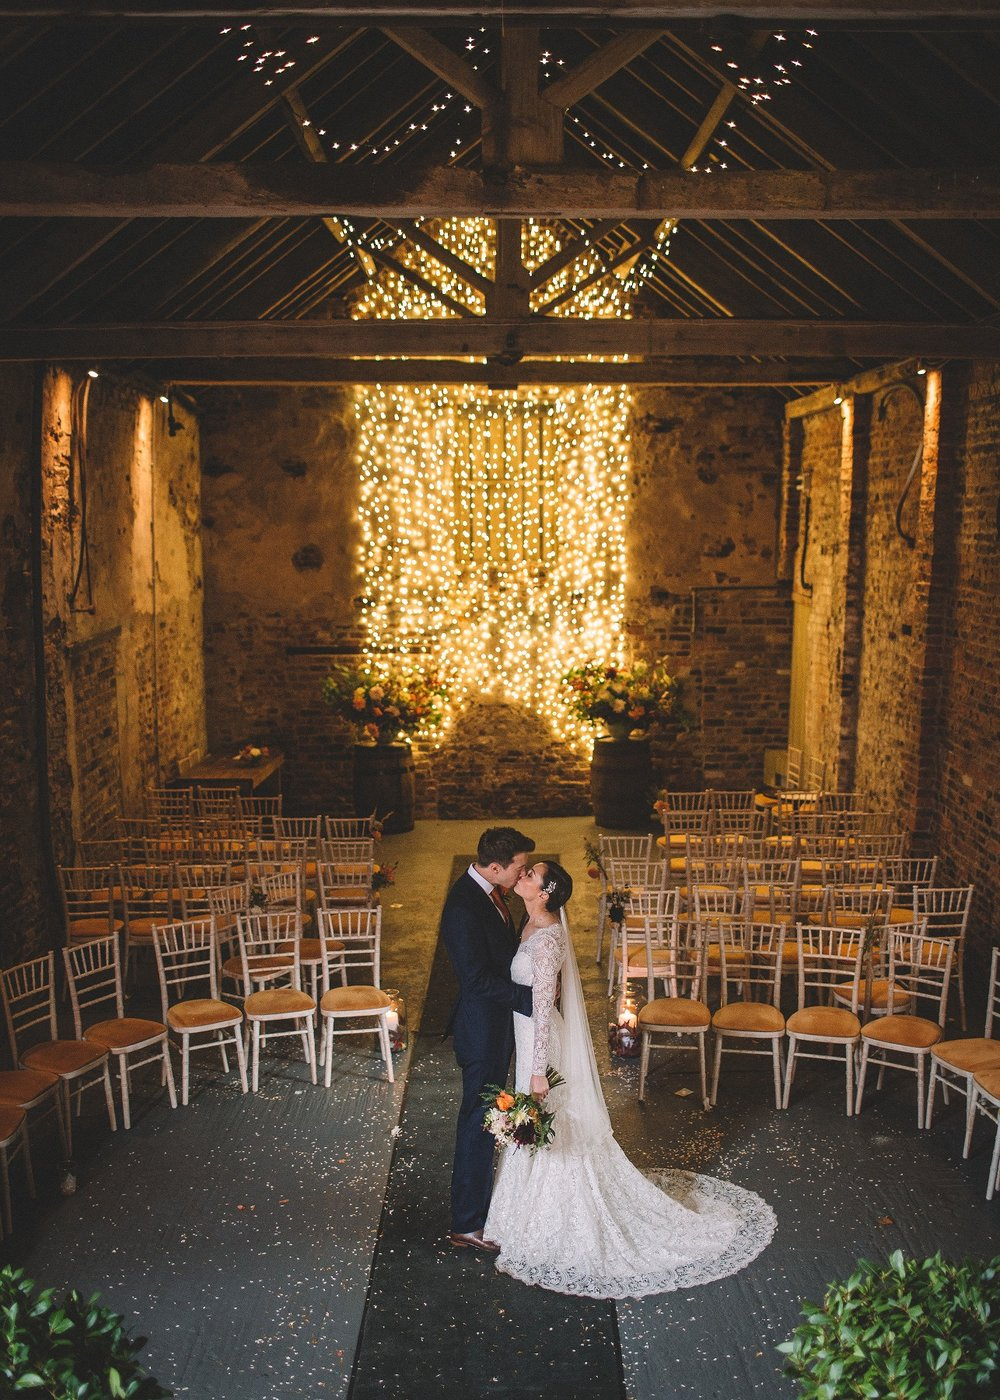 Rachel & Andrew by Lumiere Photographic - Rachel and Andrew steal a kiss in the Ceremony Barn.jpg